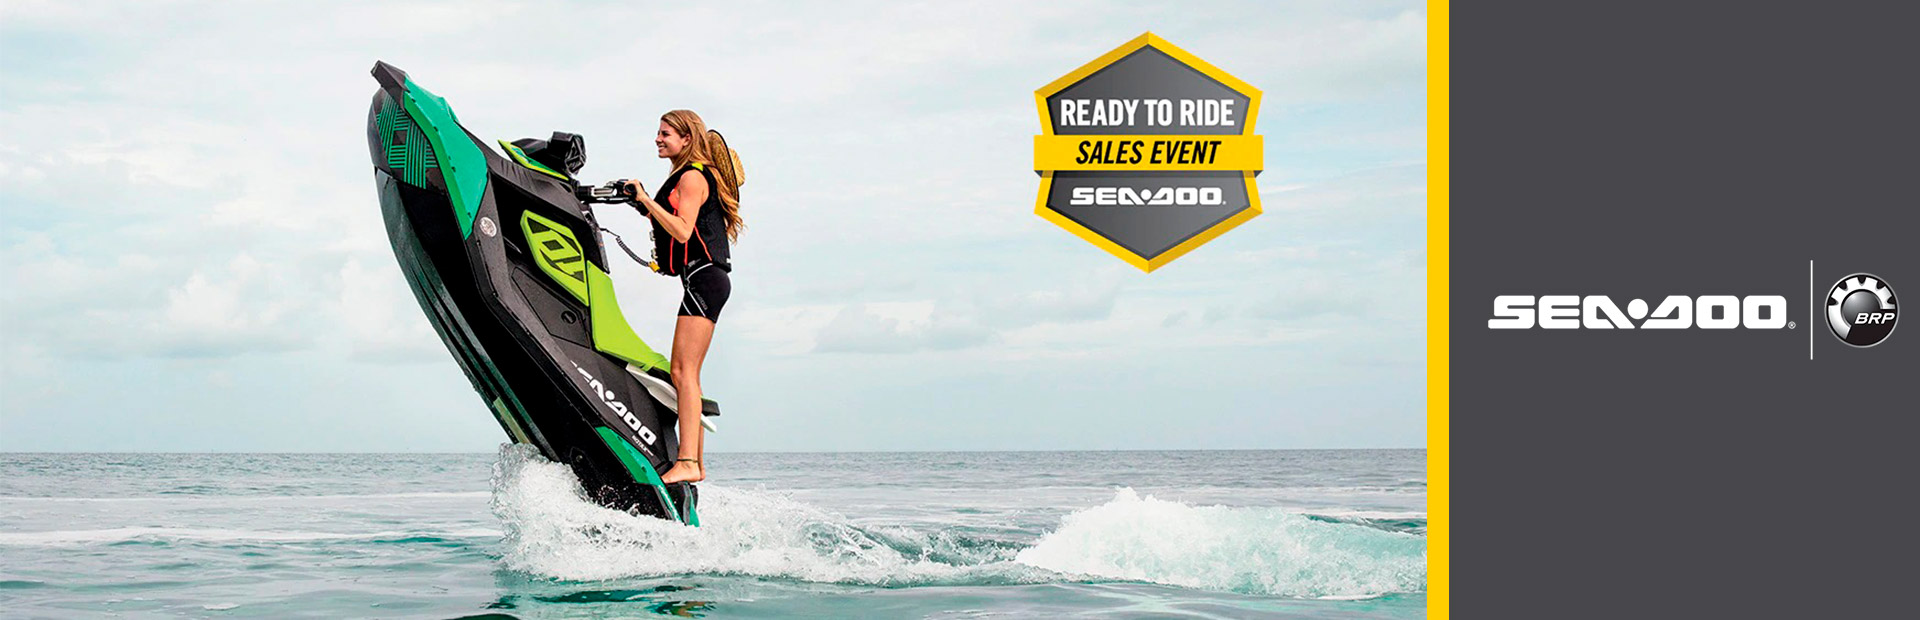 Sea-Doo: READY TO RIDE SALES EVENT SPARK